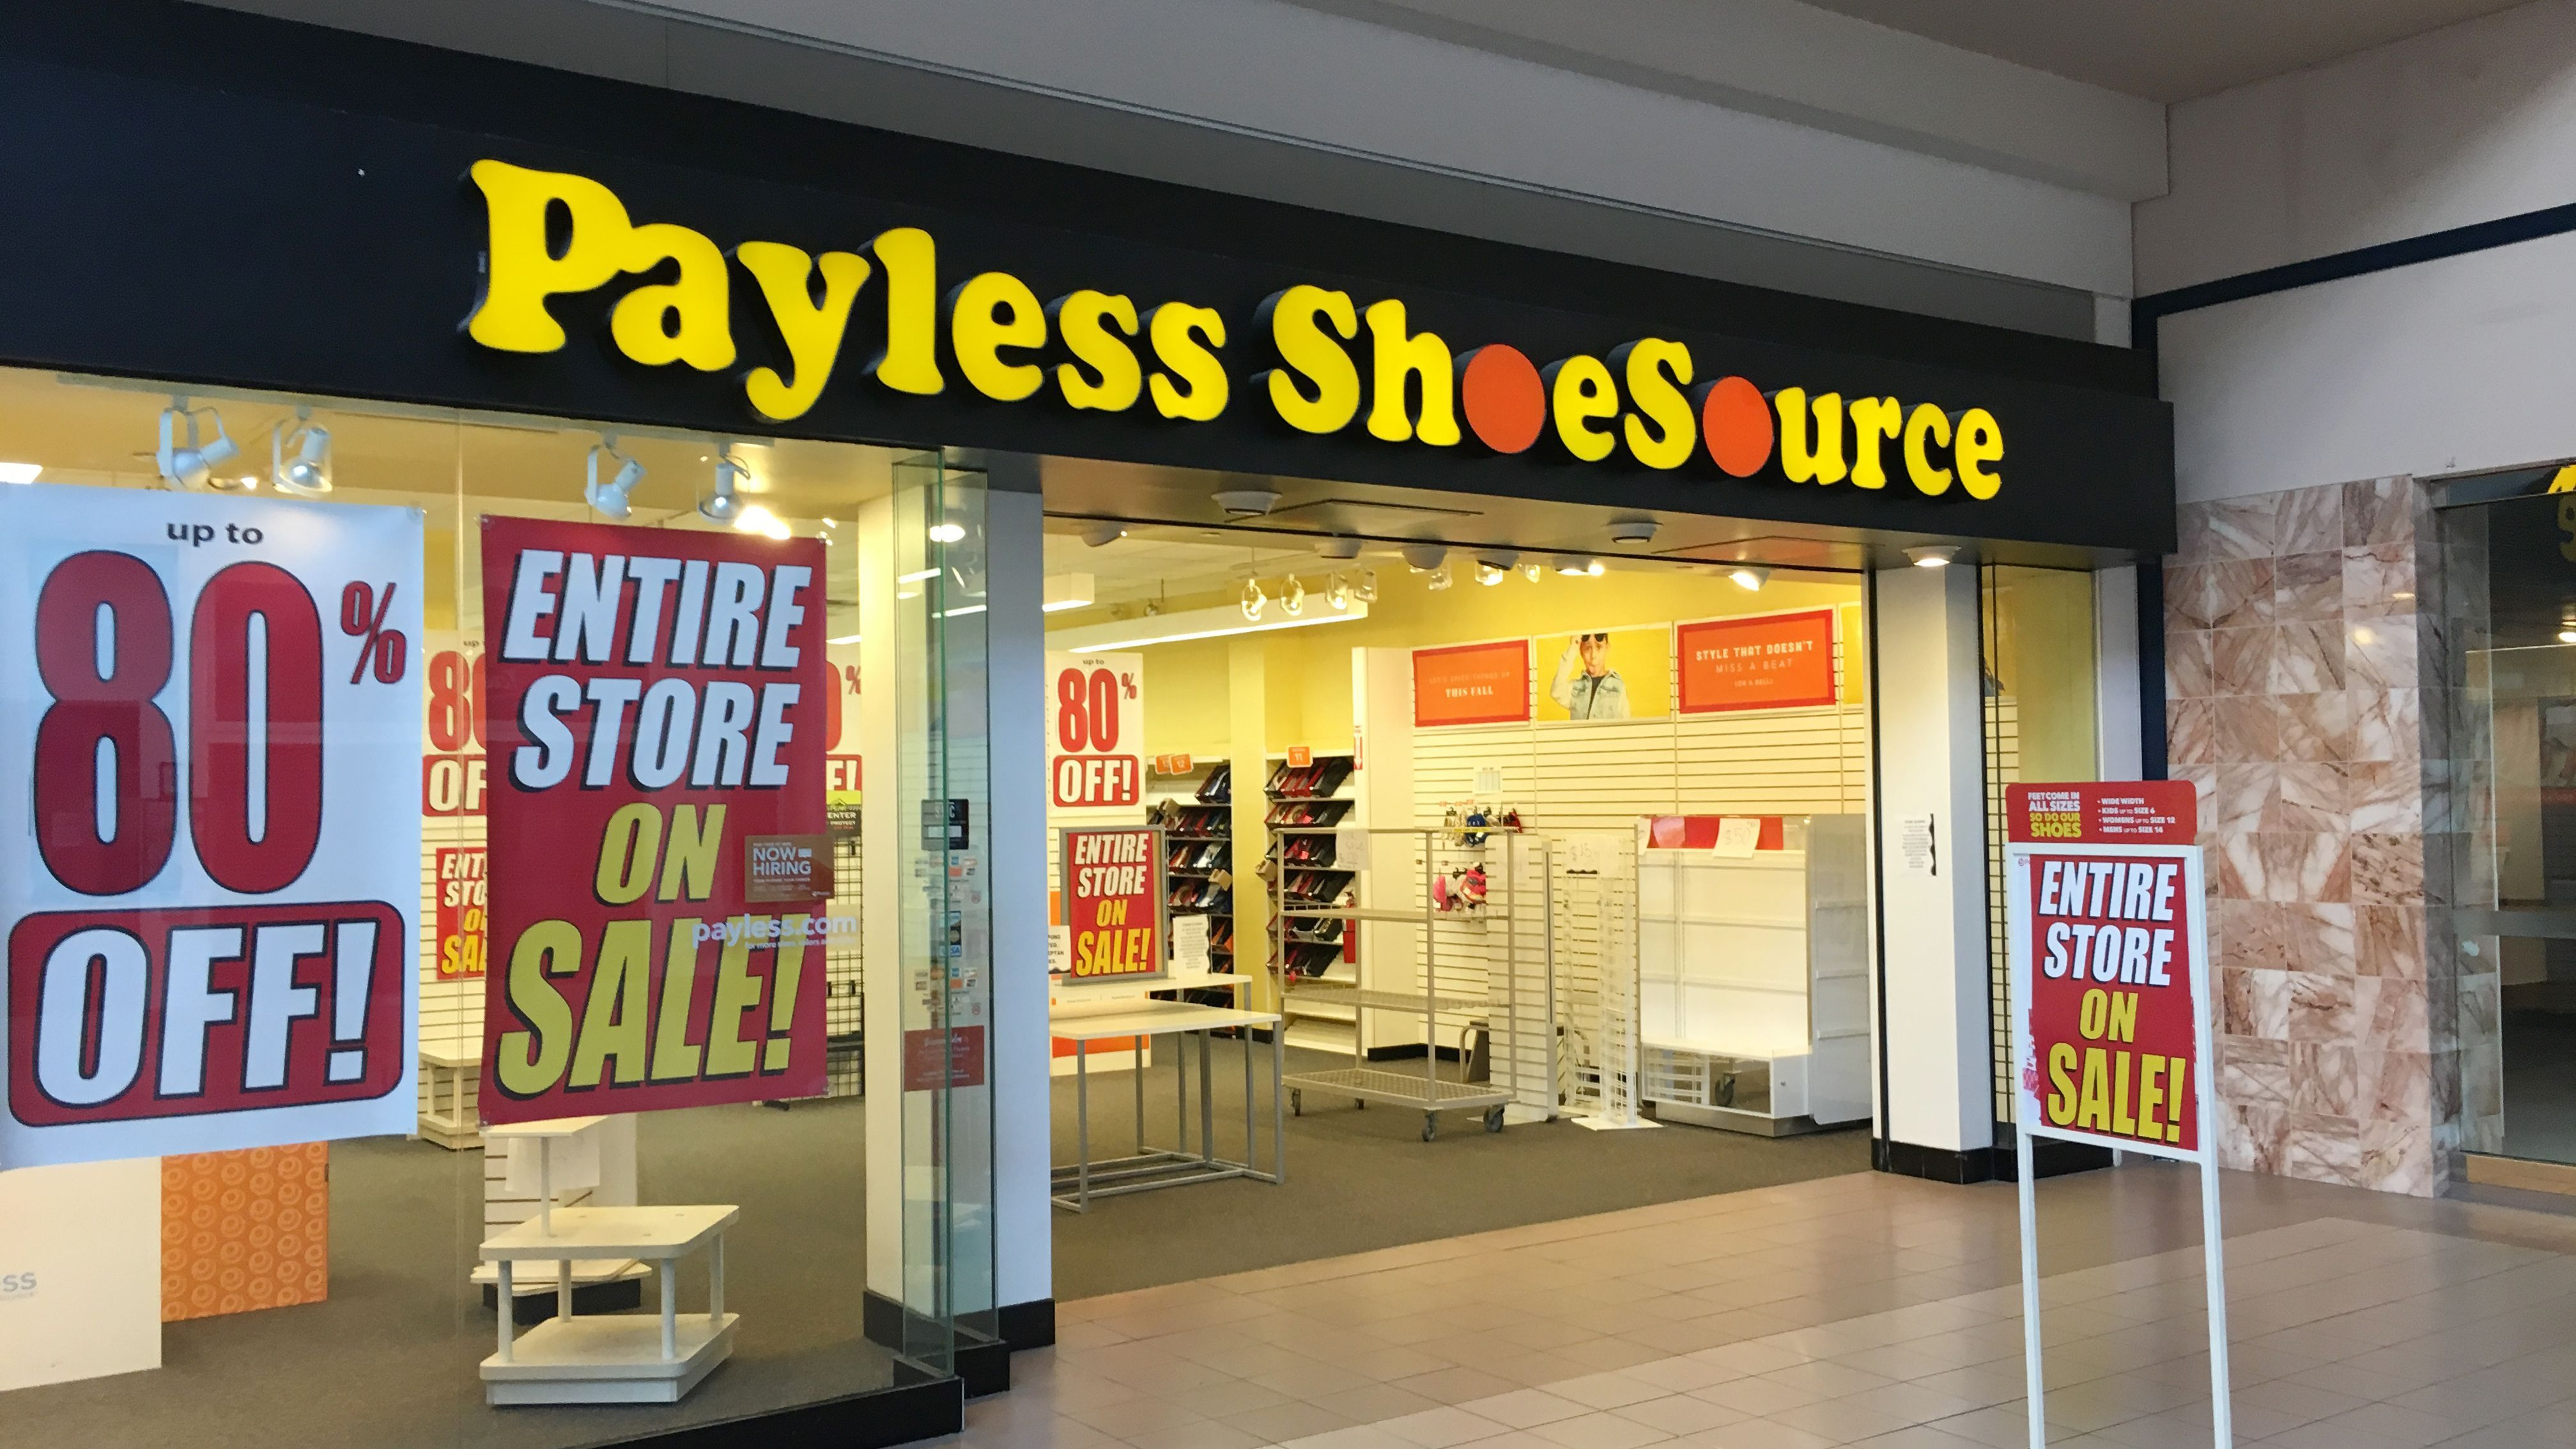 Payless ShoeSource has confirmed it